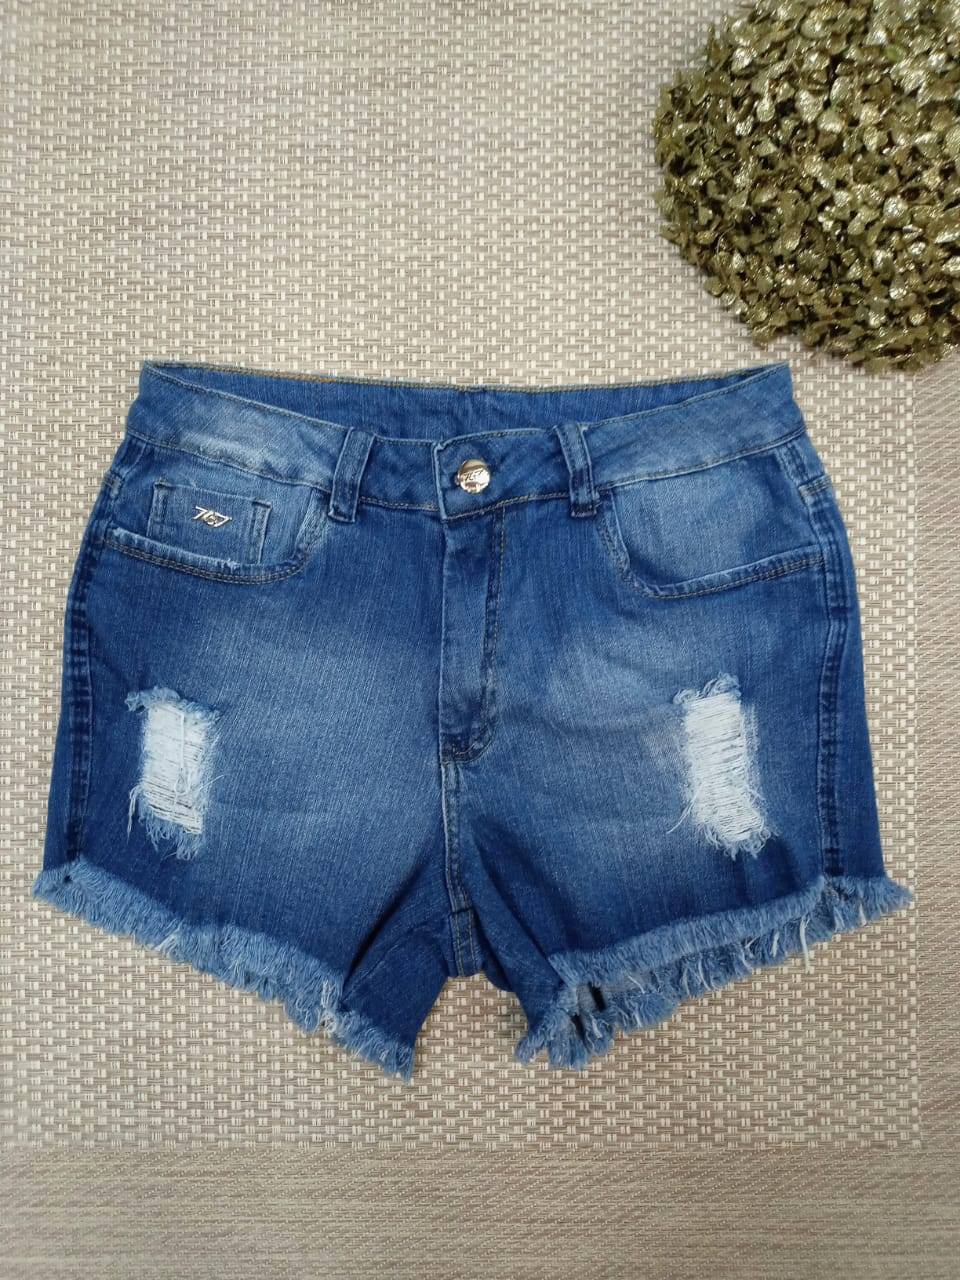 Shorts Jeans curto - Aline